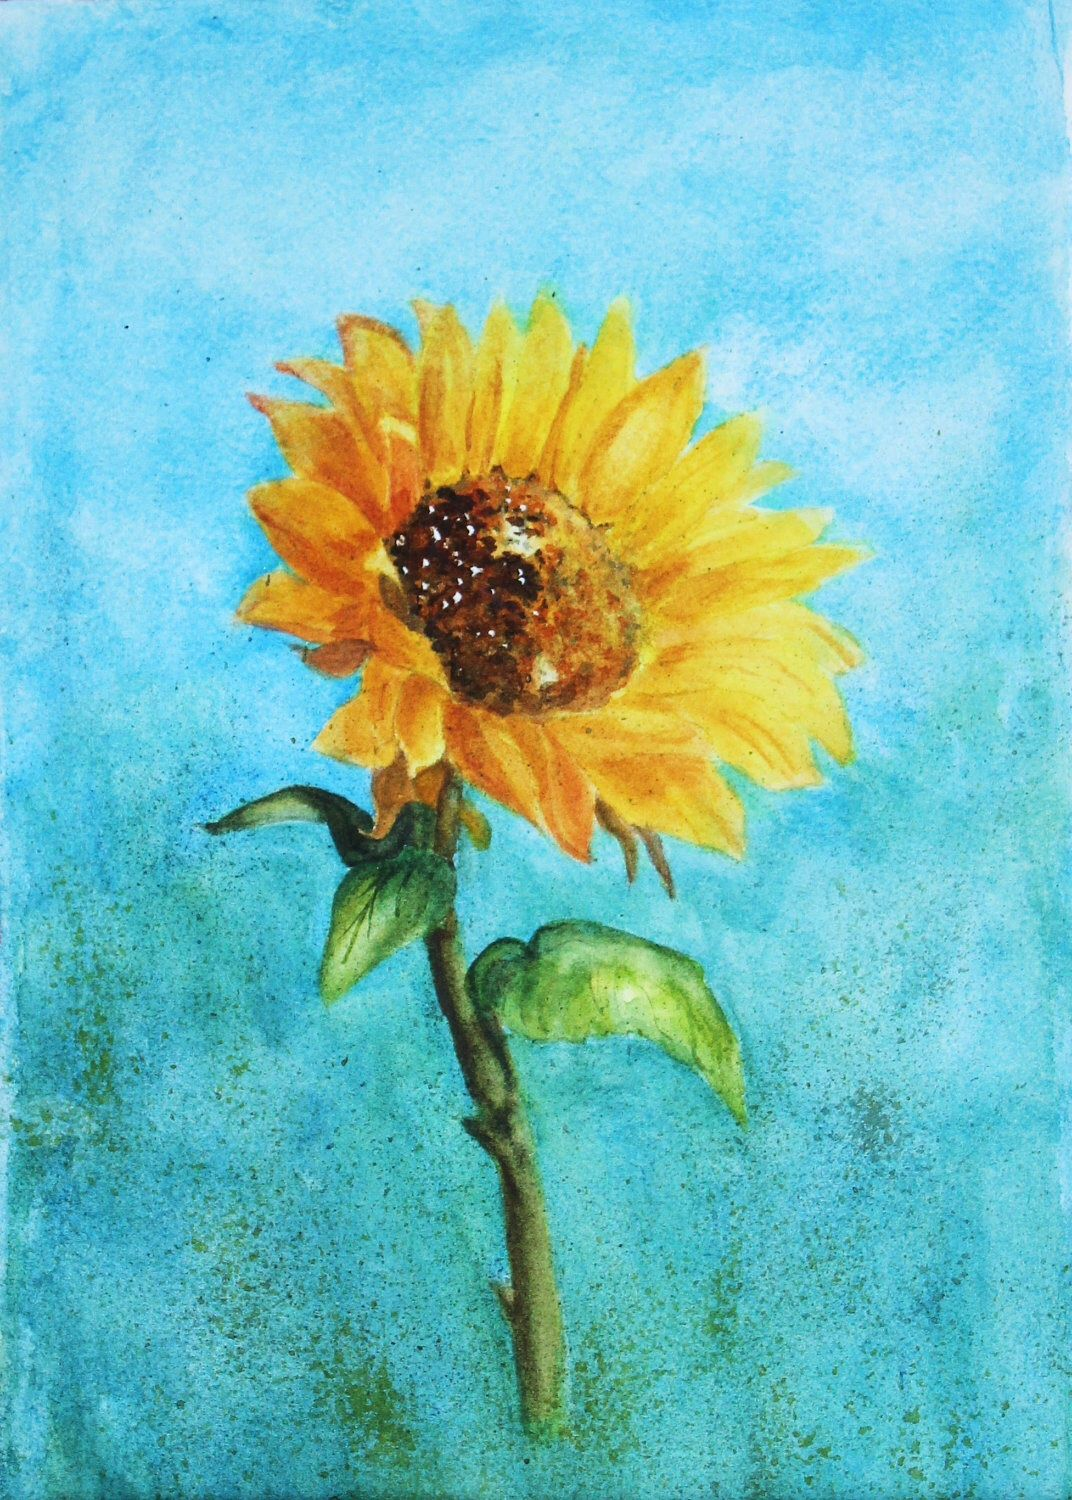 Sunflower Watercolor Painting Watercolor Sunflower Floral Painting